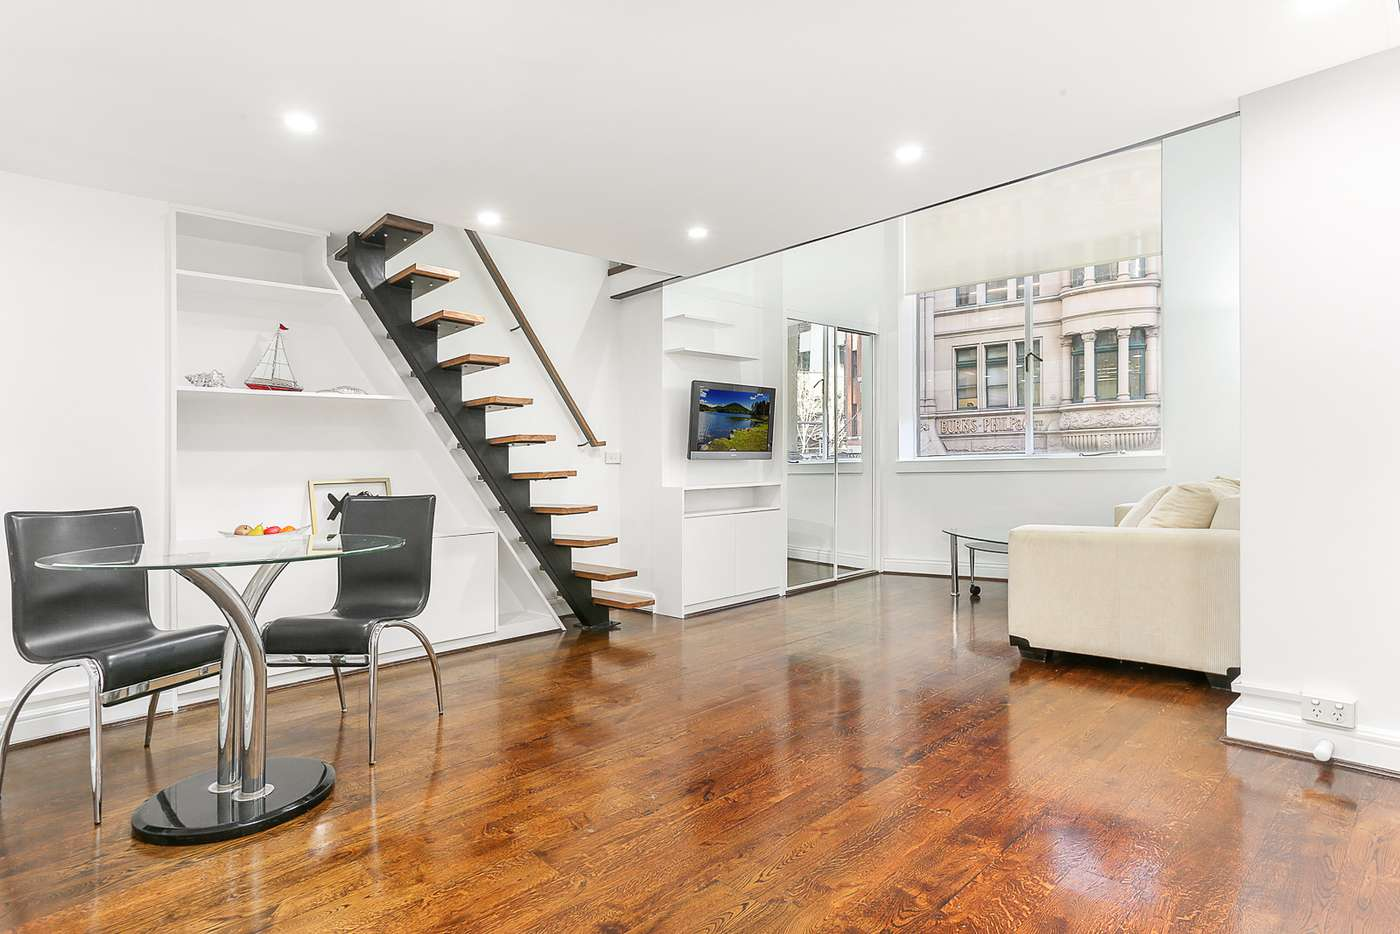 Main view of Homely apartment listing, 101/4 Bridge Street, Sydney NSW 2000